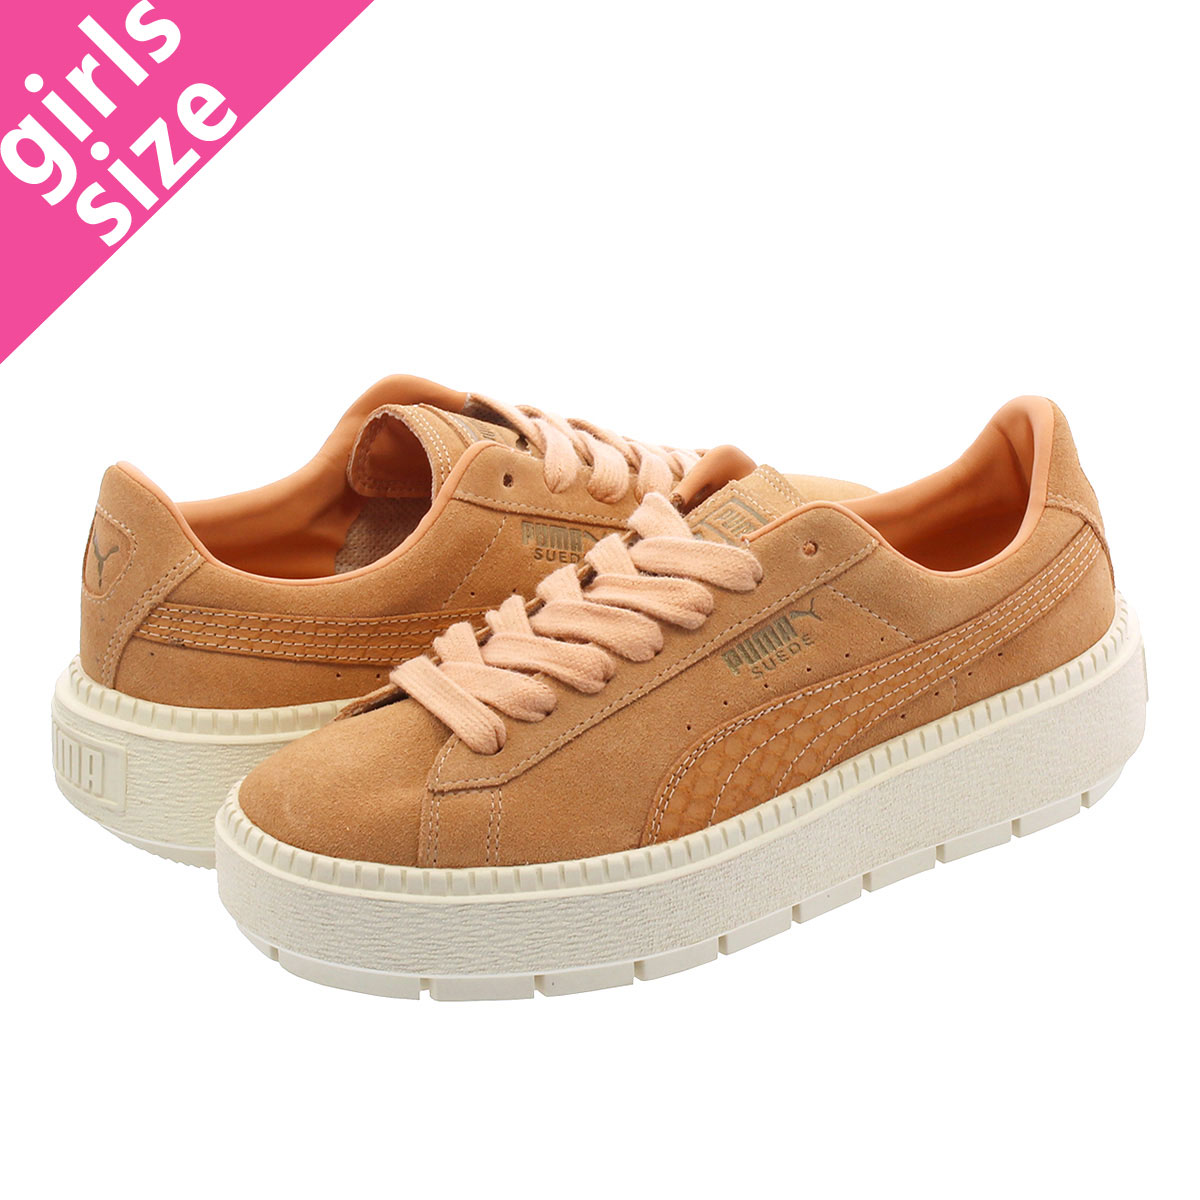 4ff42f4e5b2a SELECT SHOP LOWTEX  PUMA SUEDE PLATFORM TRACE ANIMAL DUSTY CORAL ...